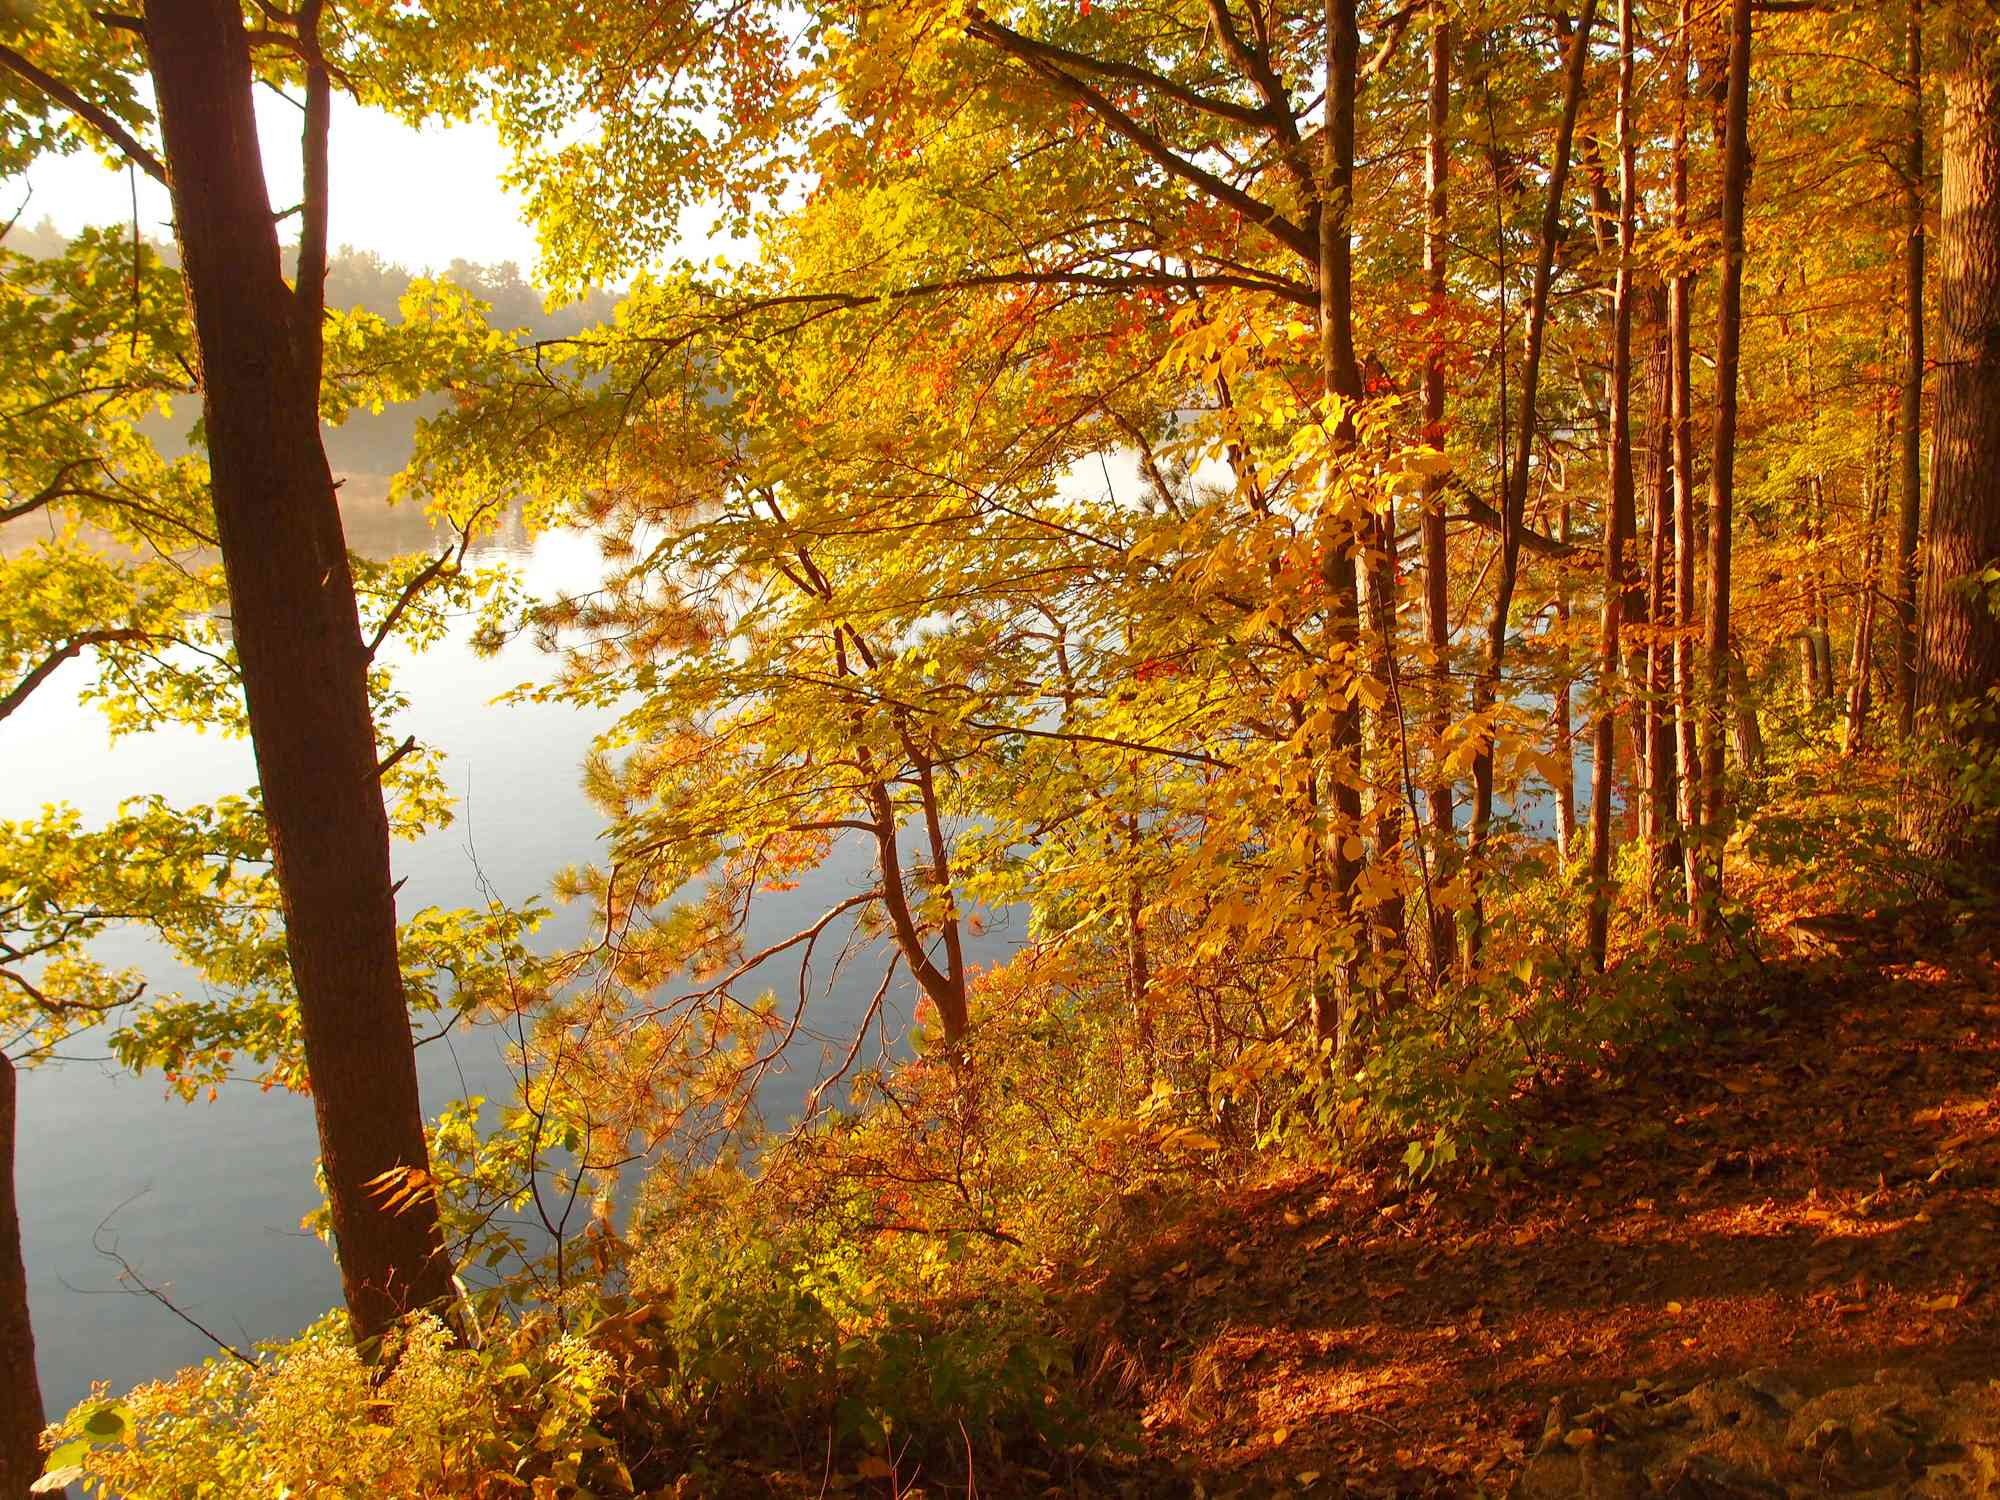 View of a lake with fall colors in Sturbridge, Massachusetts